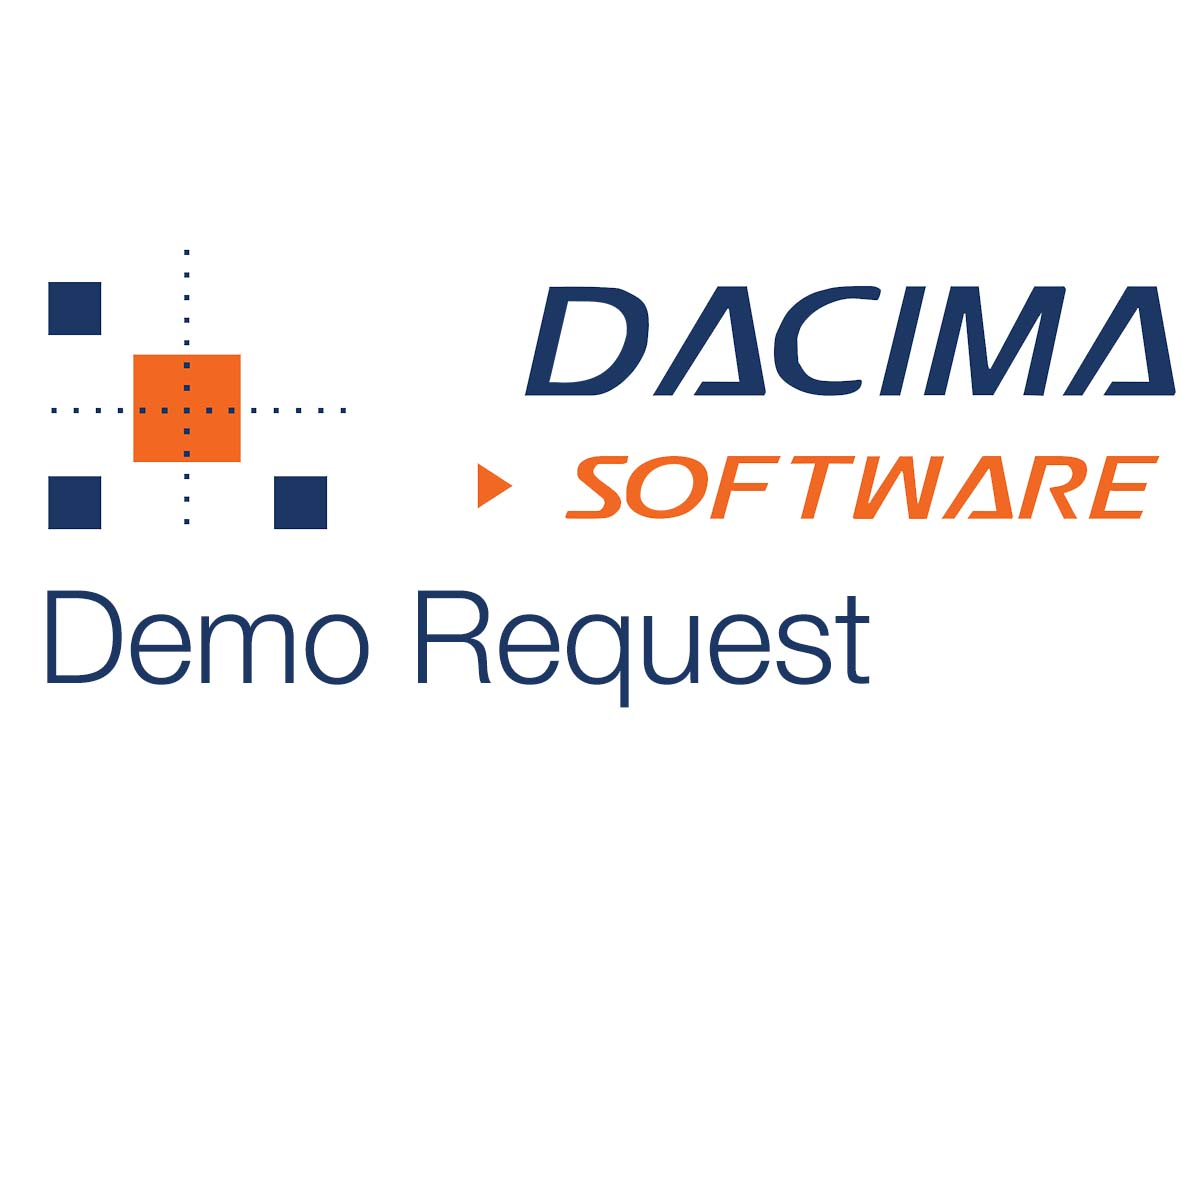 Dacima Demo Request white